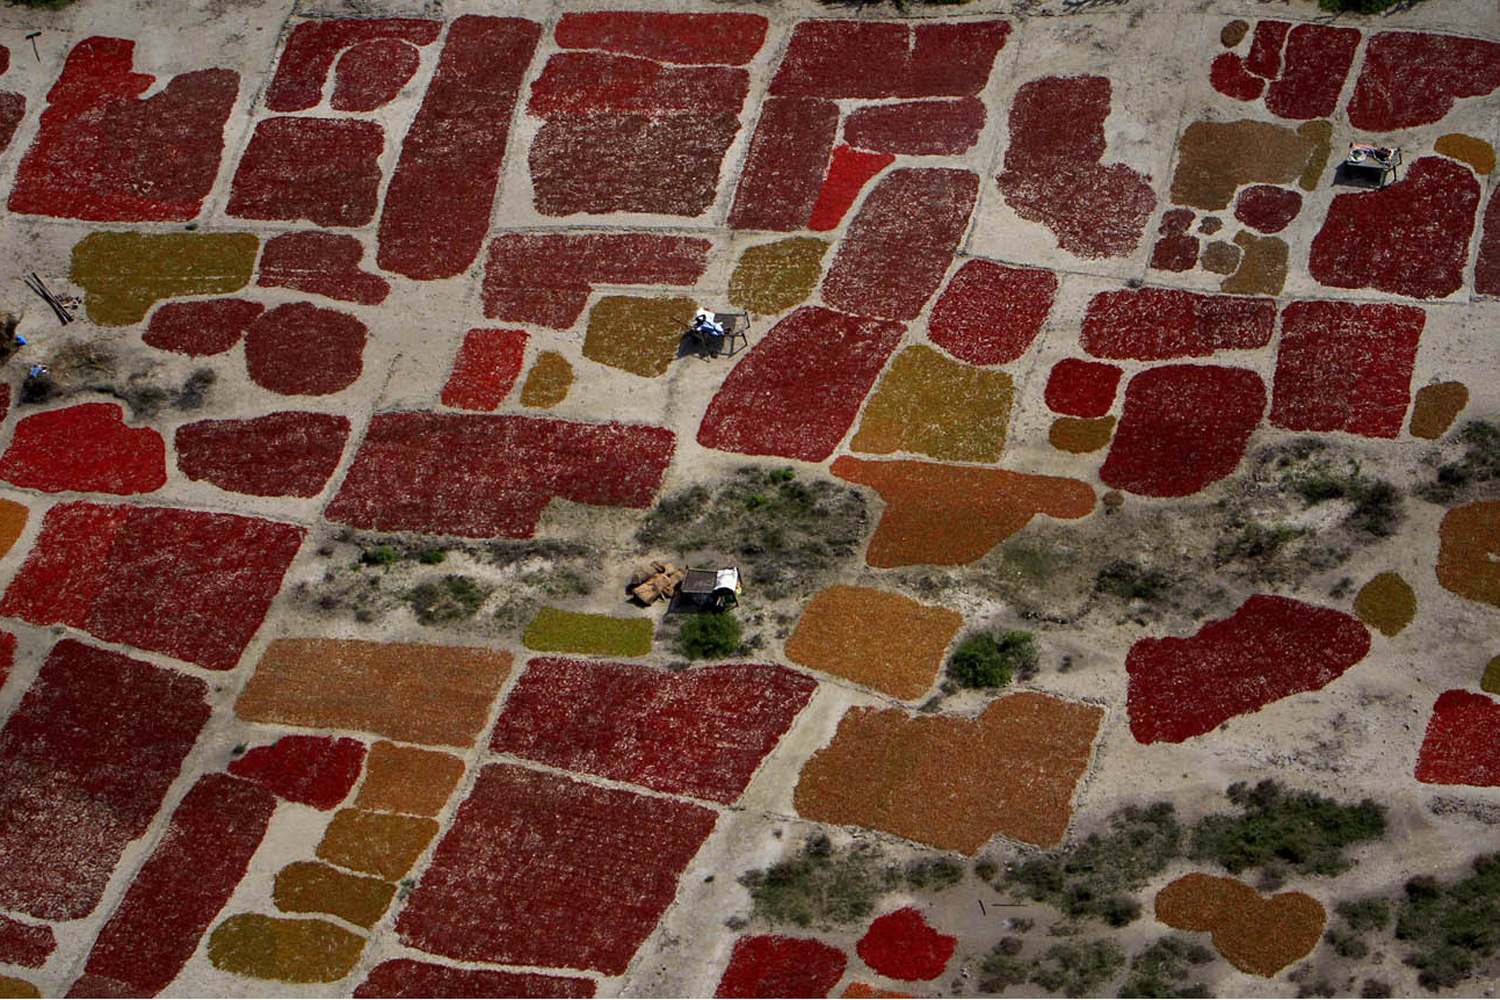 September 27, 2011. In this aerial photo, flood-affected farmers dry chili crops on high ground in the Umerkot District of Pakistan's Sindh province, where floods have killed over 200 people, damaged or destroyed some 665,000 homes and displaced more than 1.8 million people. Neighboring Baluchistan province has also been affected.